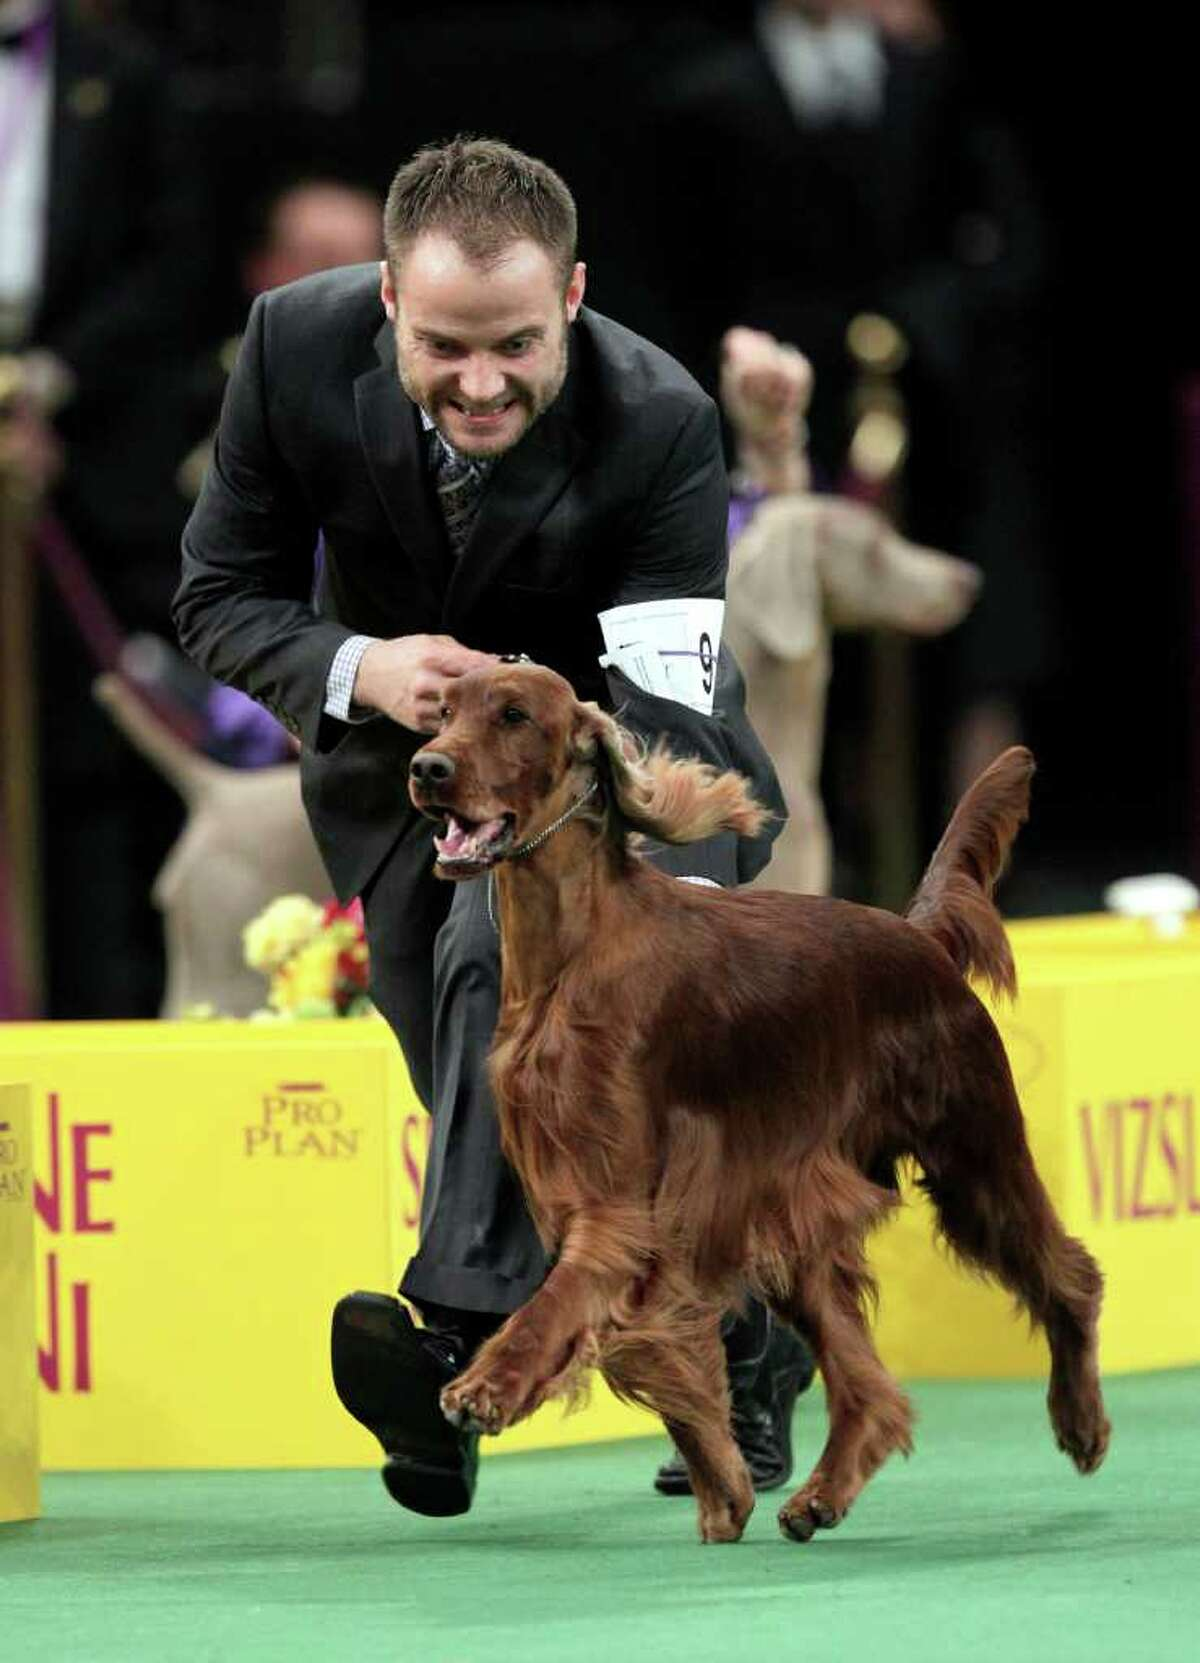 Adam Bernardin reacts as Shadagee Caught Red Handed, an Irish setter, is declared the Best of Sporting Group at the 136th annual Westminster Kennel Club dog show in New York, Tuesday, Feb. 14, 2012. (AP Photo/Seth Wenig)